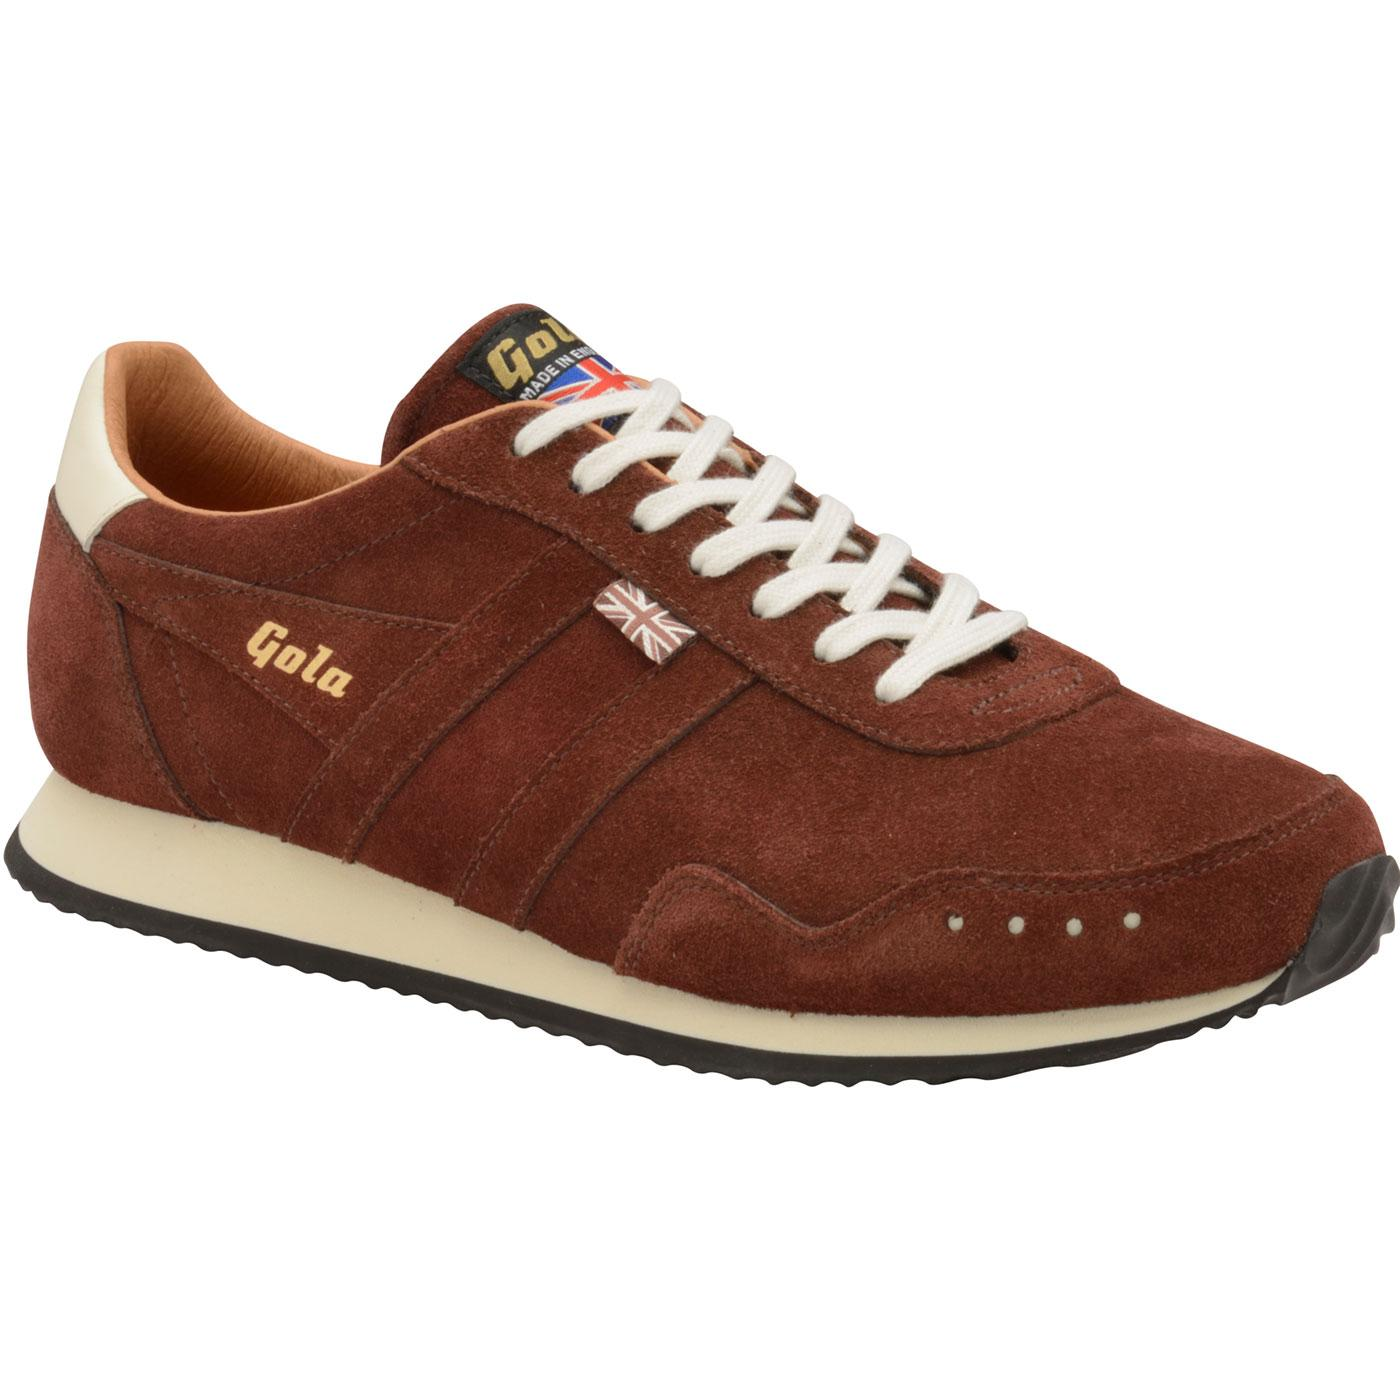 Track Suede GOLA Made in England Retro Trainers C